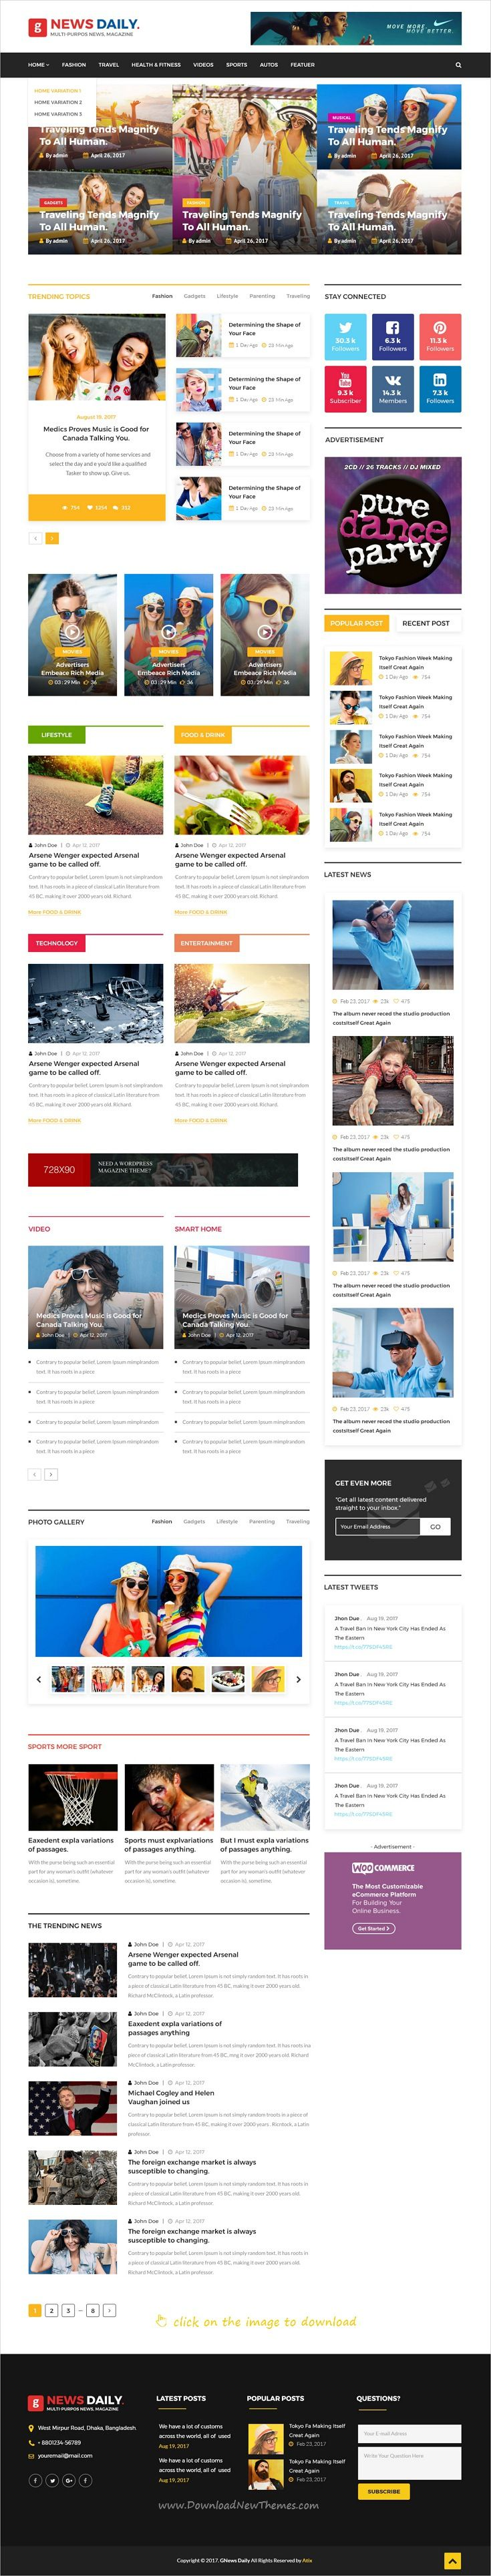 News Daily Is Clean And Modern Design Psd Template For Blog